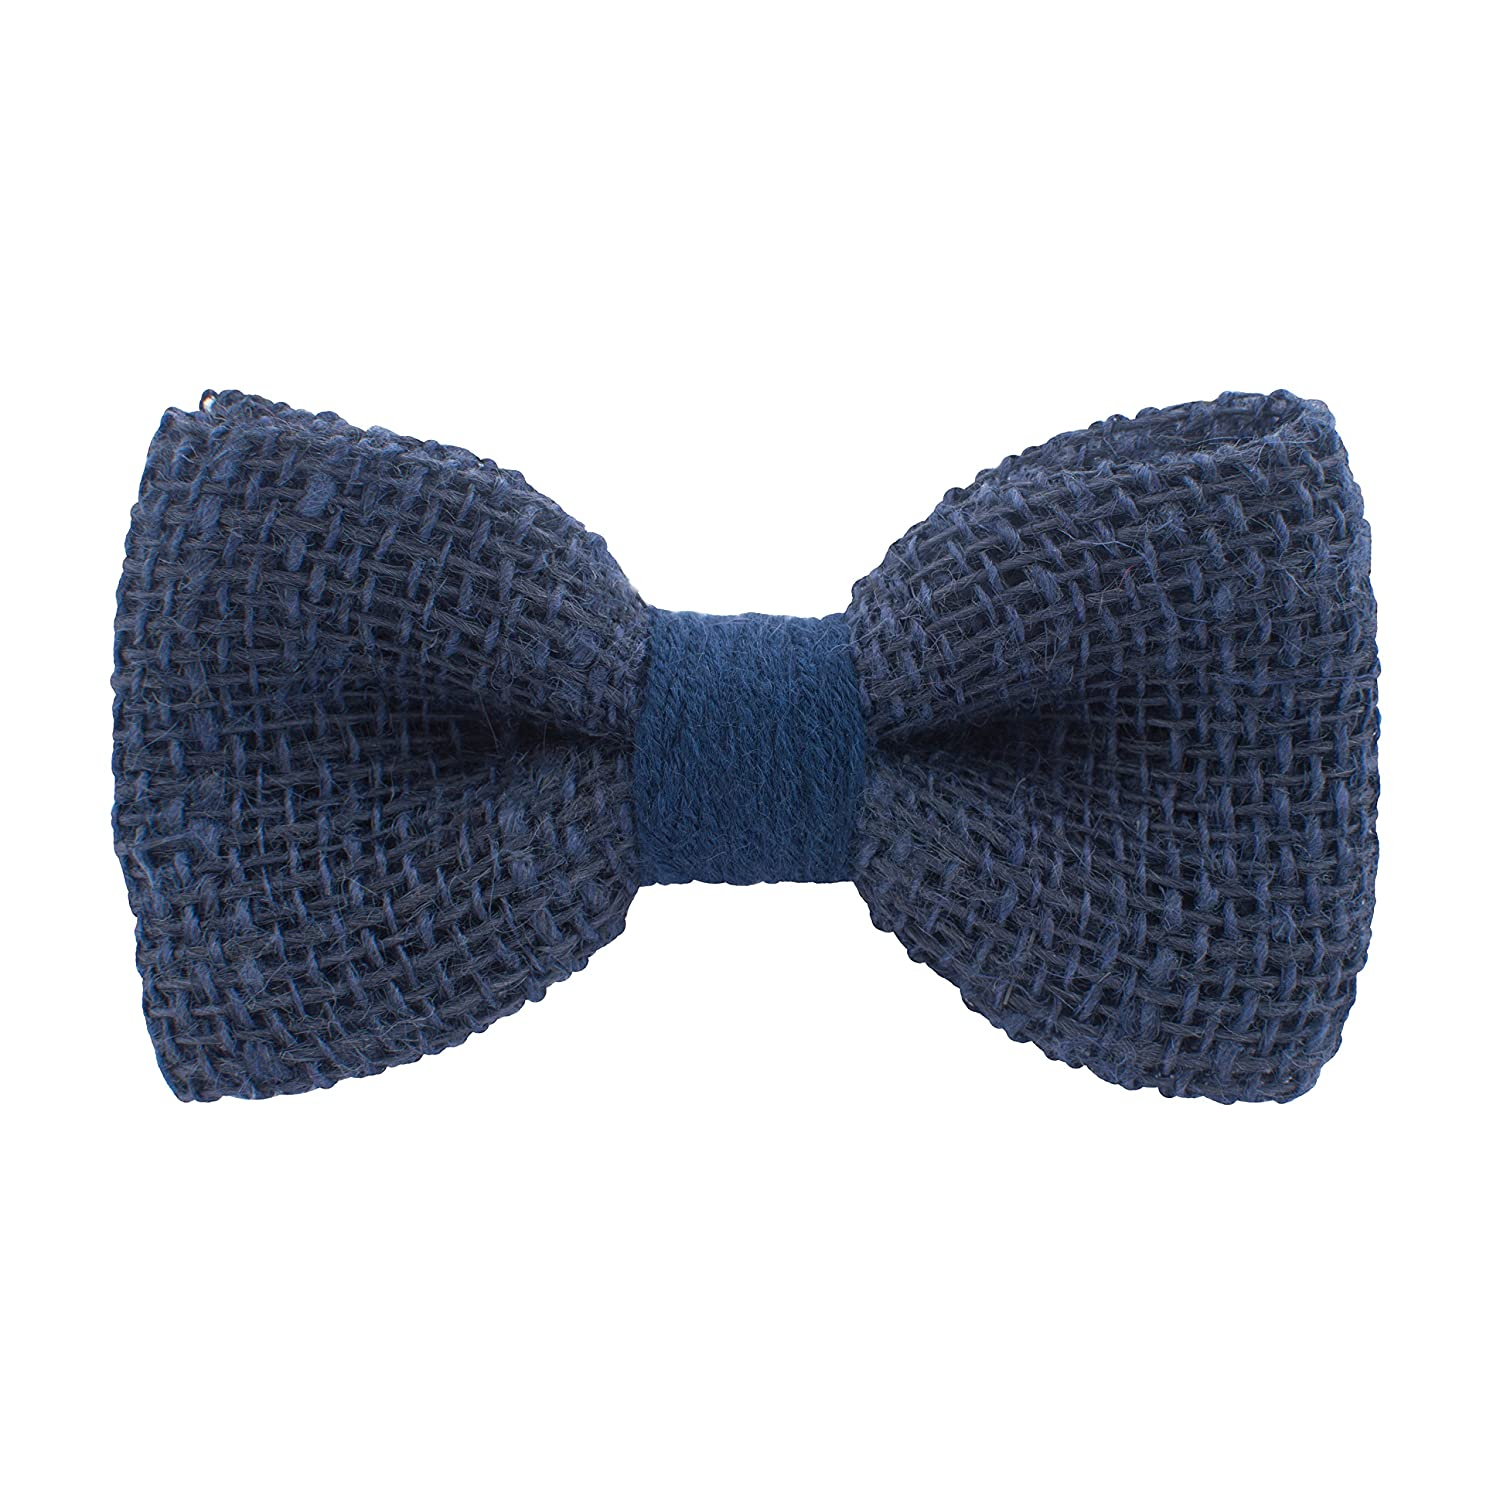 Bow Tie House Rustic Pre-Tied Bow Tie in 100% Burlap Hessian (Small, Blue) 07735